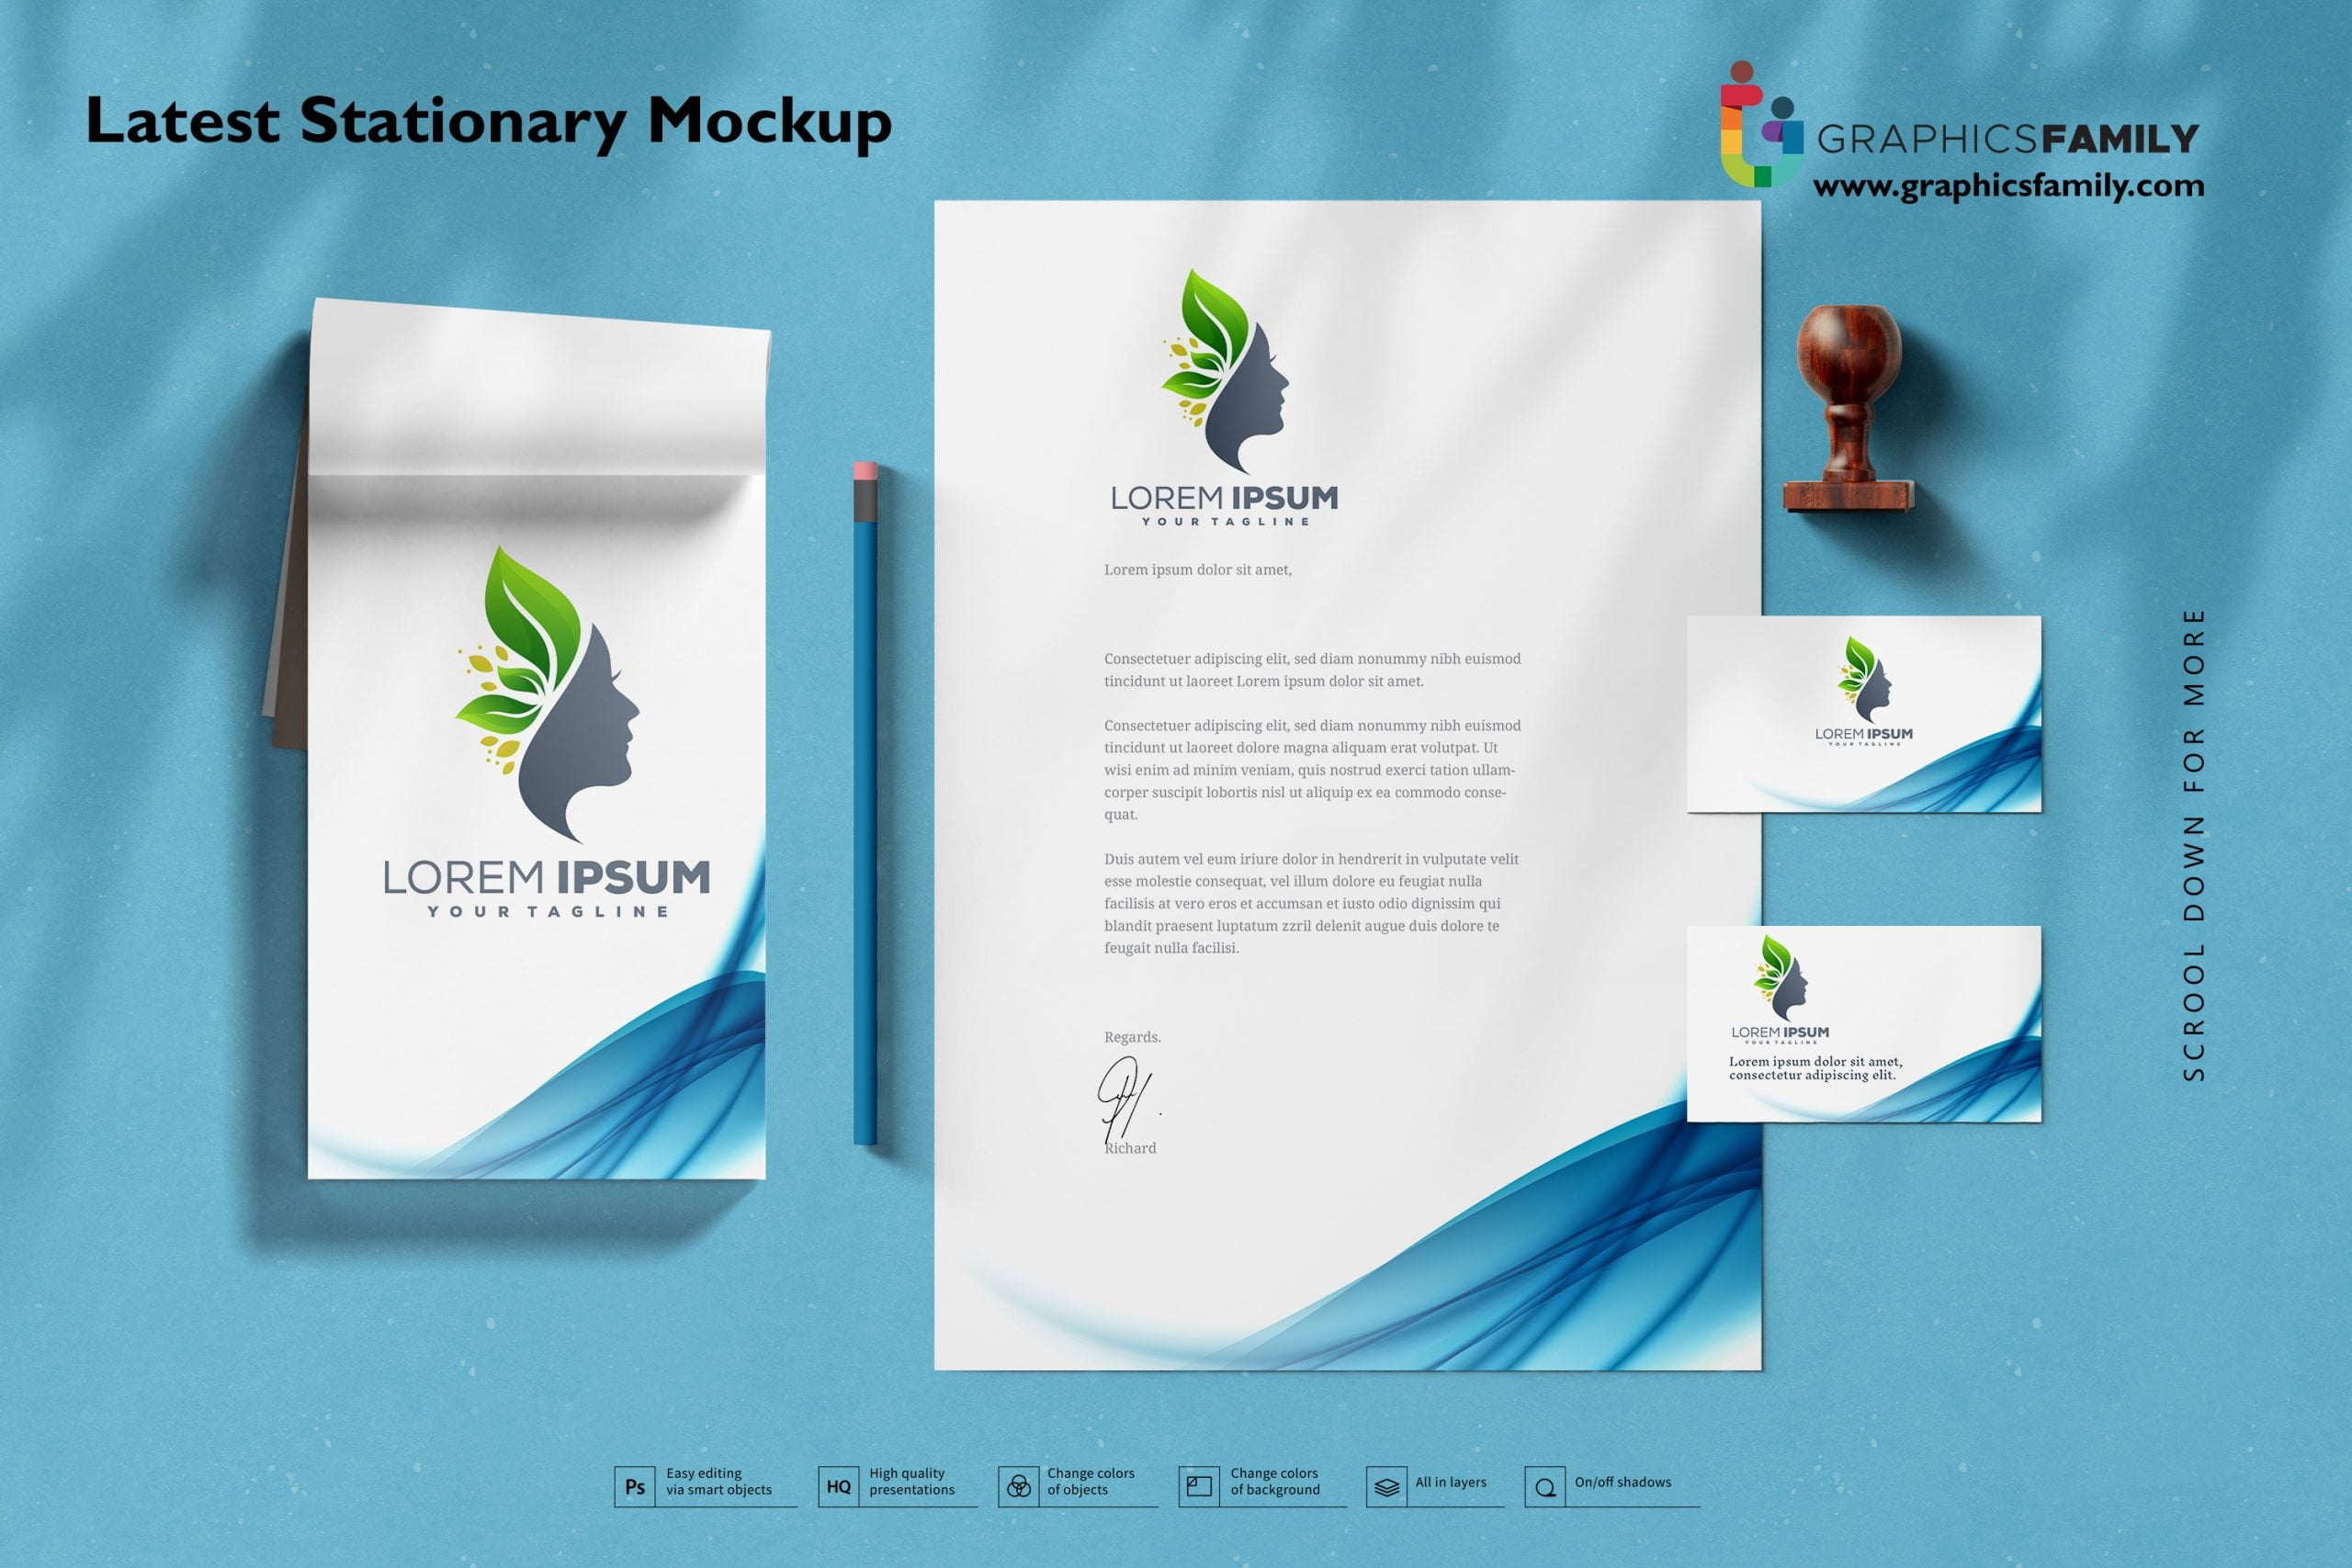 Best Stationery Mockup Download